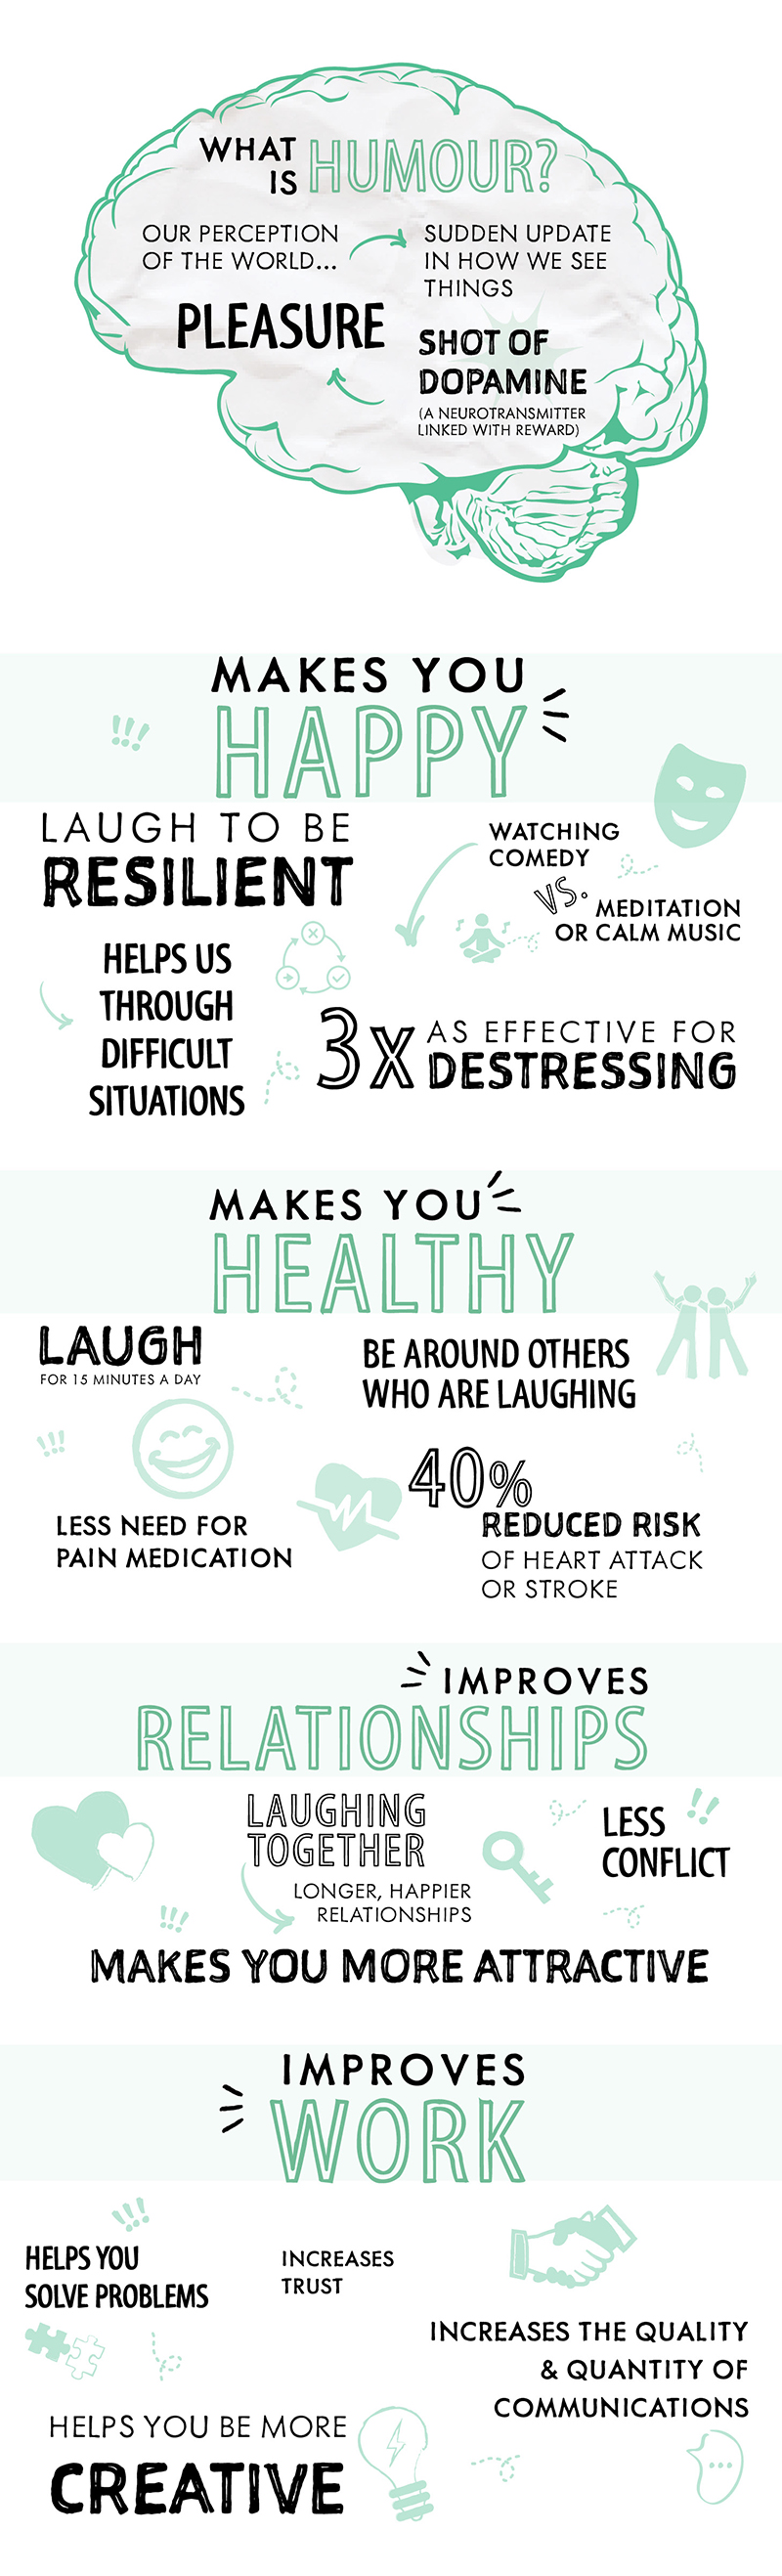 What is humour? Our perception of the world Sudden update in how we see things Shot of dopamine (A neurotransmitter linked with reward) Pleasure Makes you happy Laugh to be resilient Helps us through difficult situations Watching comedy vs. meditation or calm music 3x as effective for destressing Makes you healthy Laugh for 15 minutes a day Be around others who are laughing Less need for pain medication 40% reduced risk of heart attack or stroke Improves work Increases trust Helps you solve problems Increases the quality & quantity of communications Helps you be more creative Improves relationships Laughing together ® Longer, happier relationships Less conflict Makes you more attractive